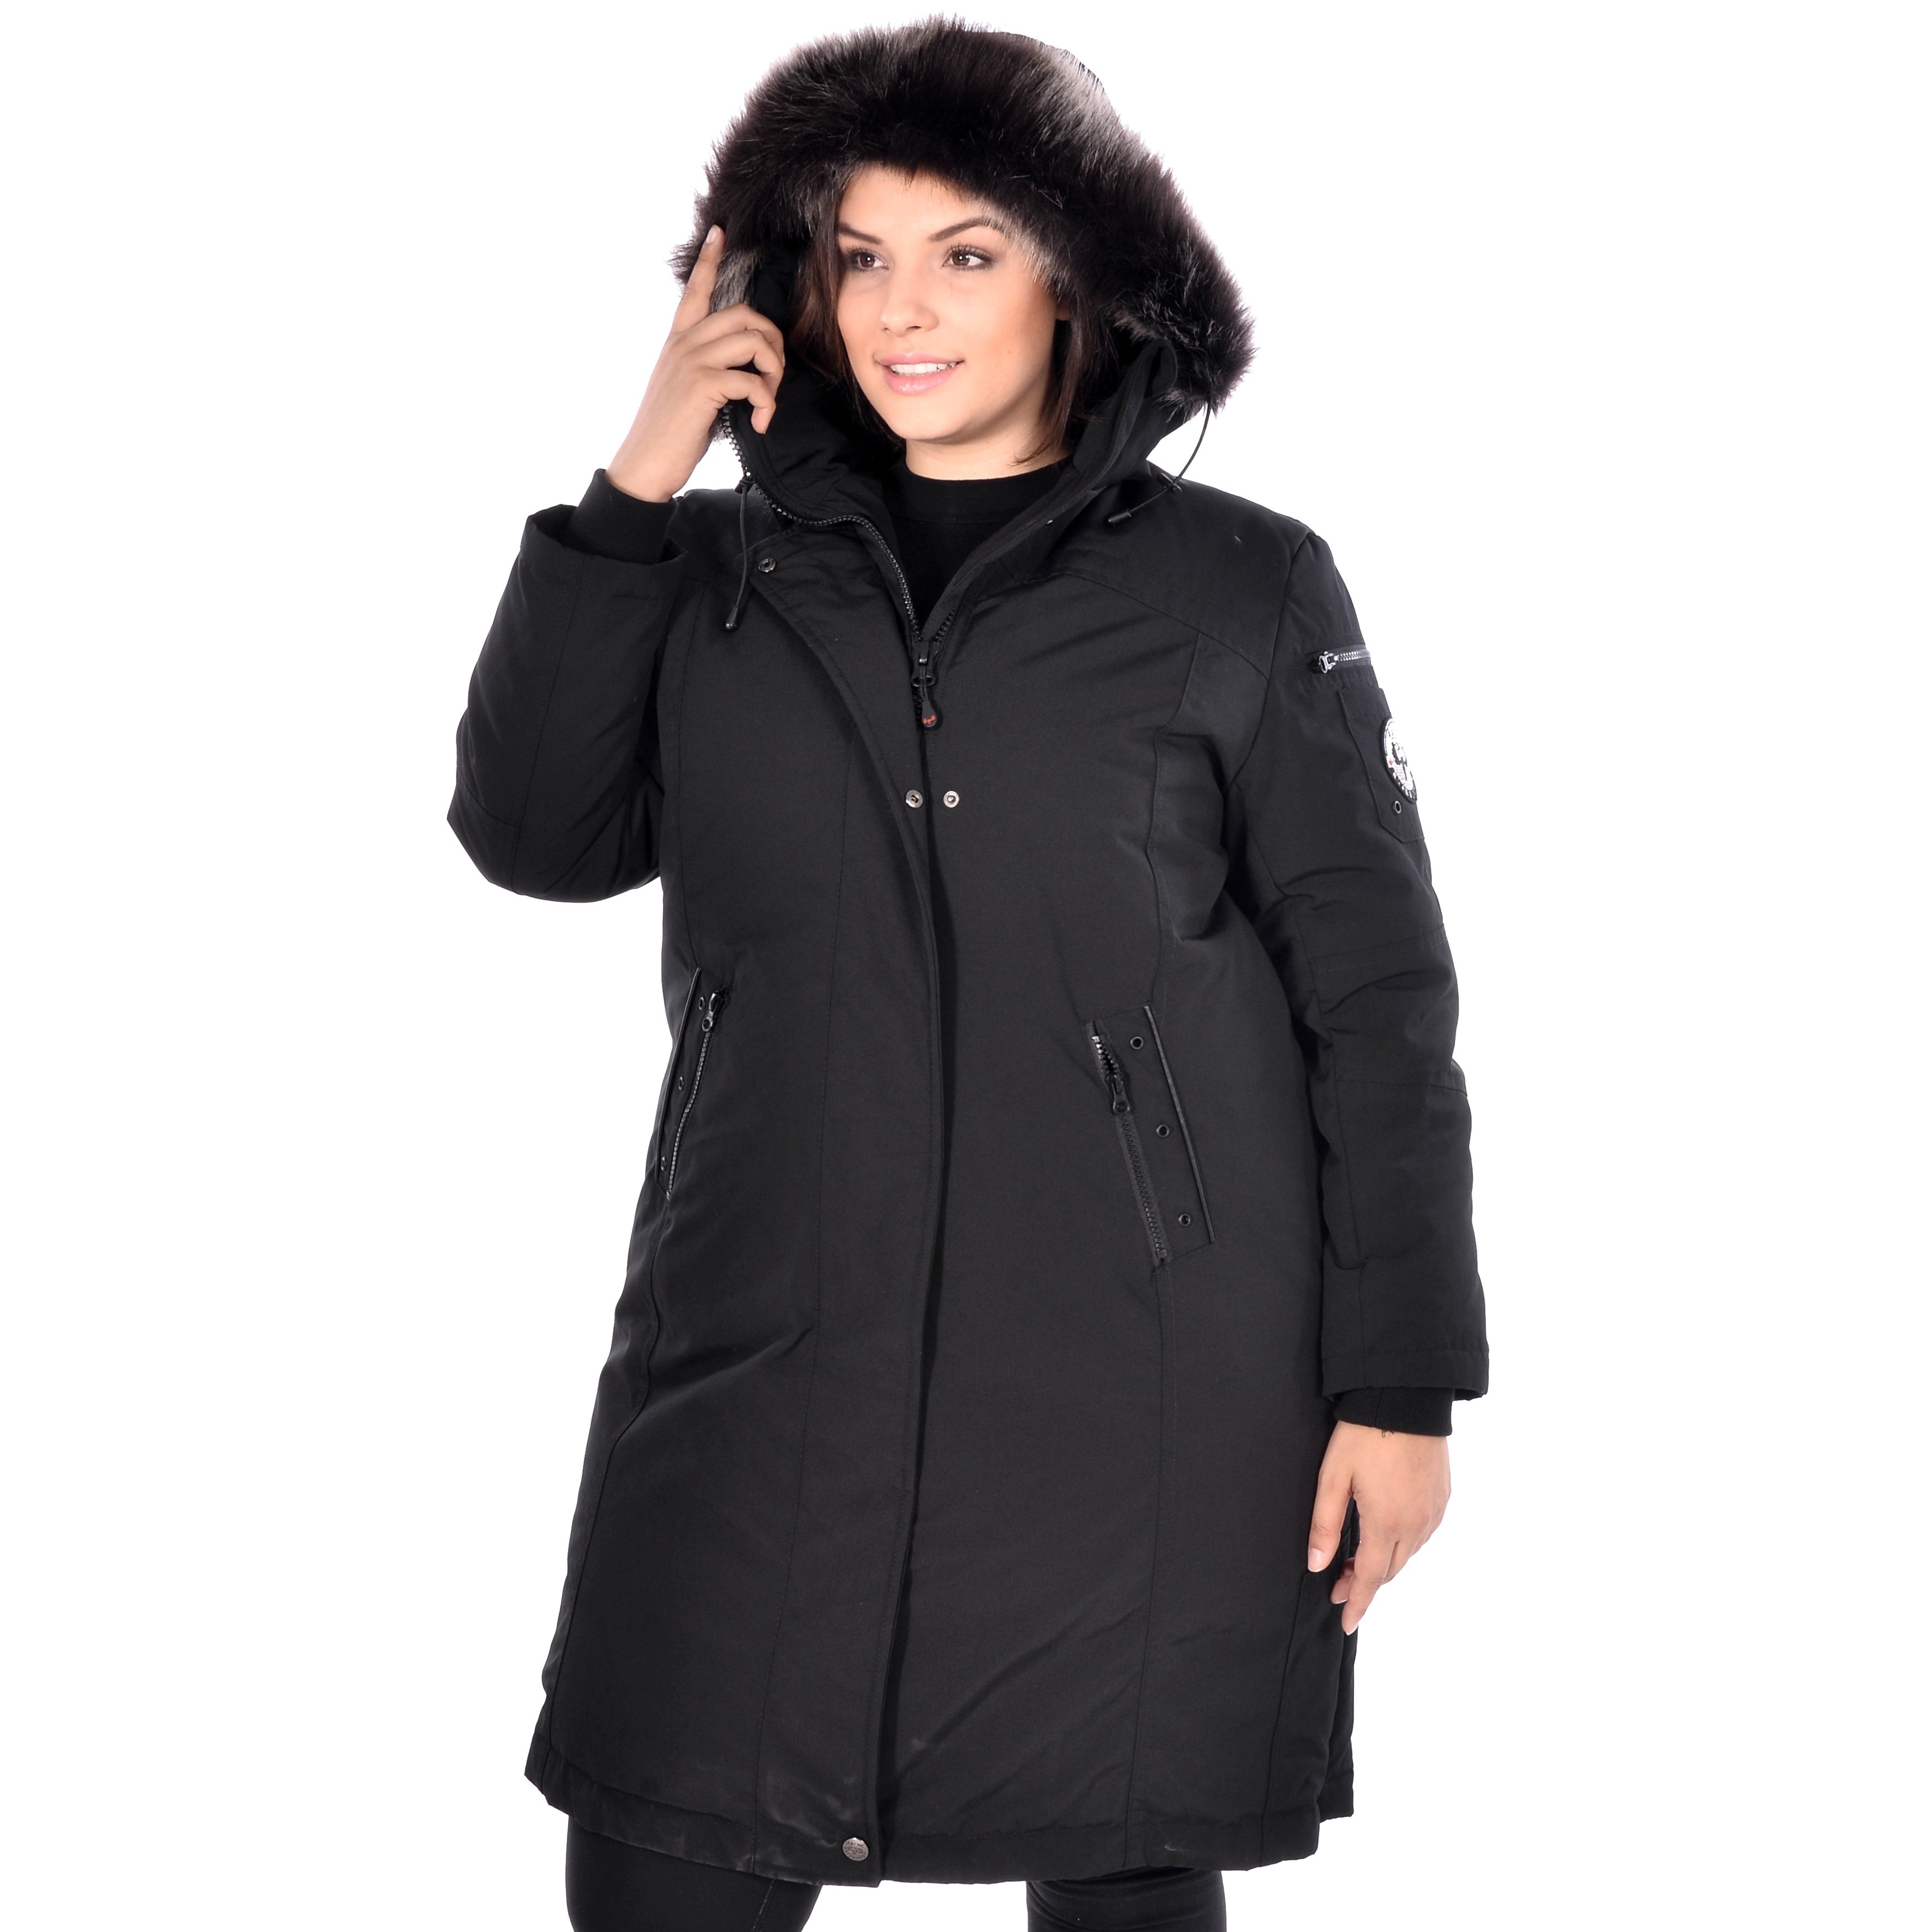 3a5844b84e8 Shop Women s Plus Size Down Coat - Free Shipping Today - Overstock -  10694189